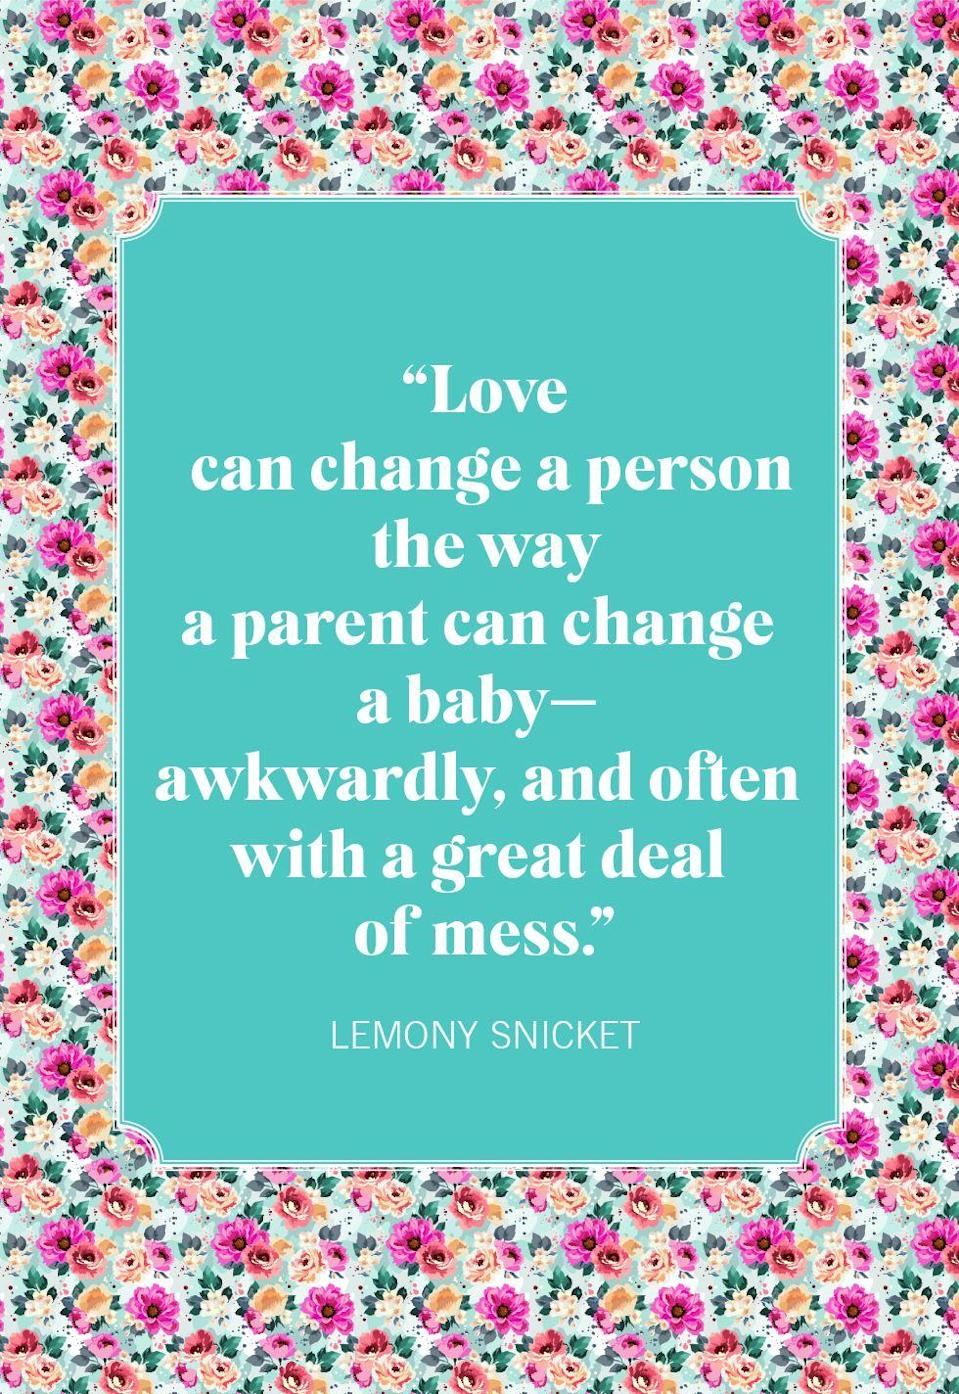 "<p>""Love can change a person the way a parent can change a baby—awkwardly, and often with a great deal of mess.""</p>"